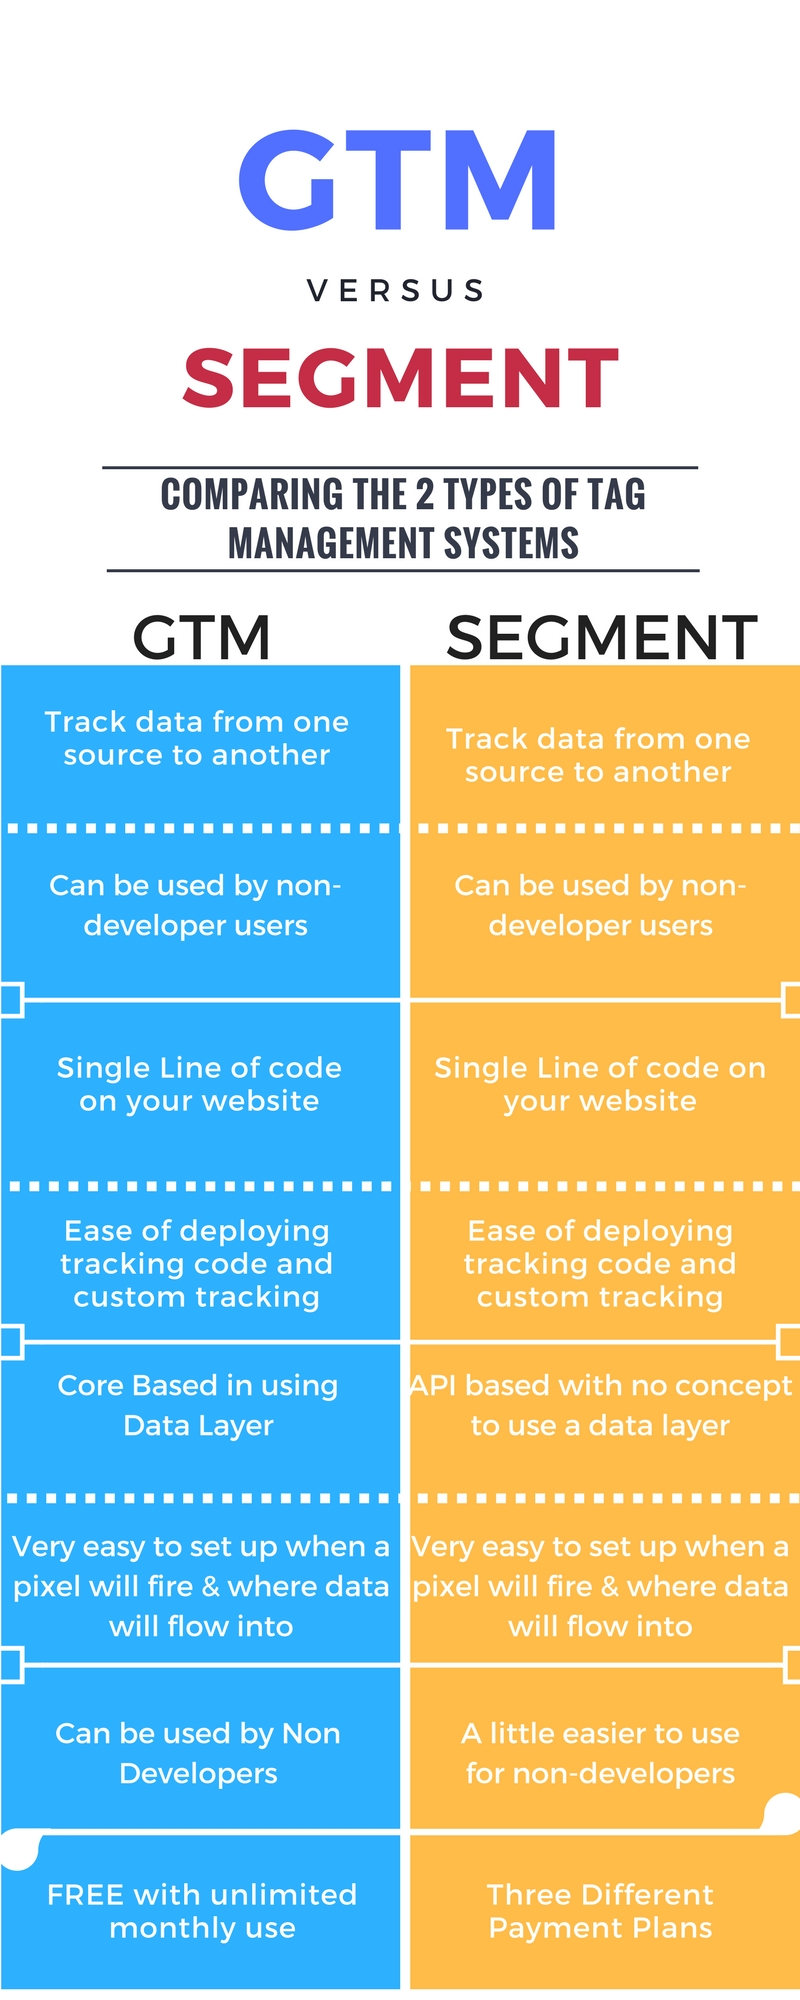 GTM vs Segment: Product Comparison - InfoTrust